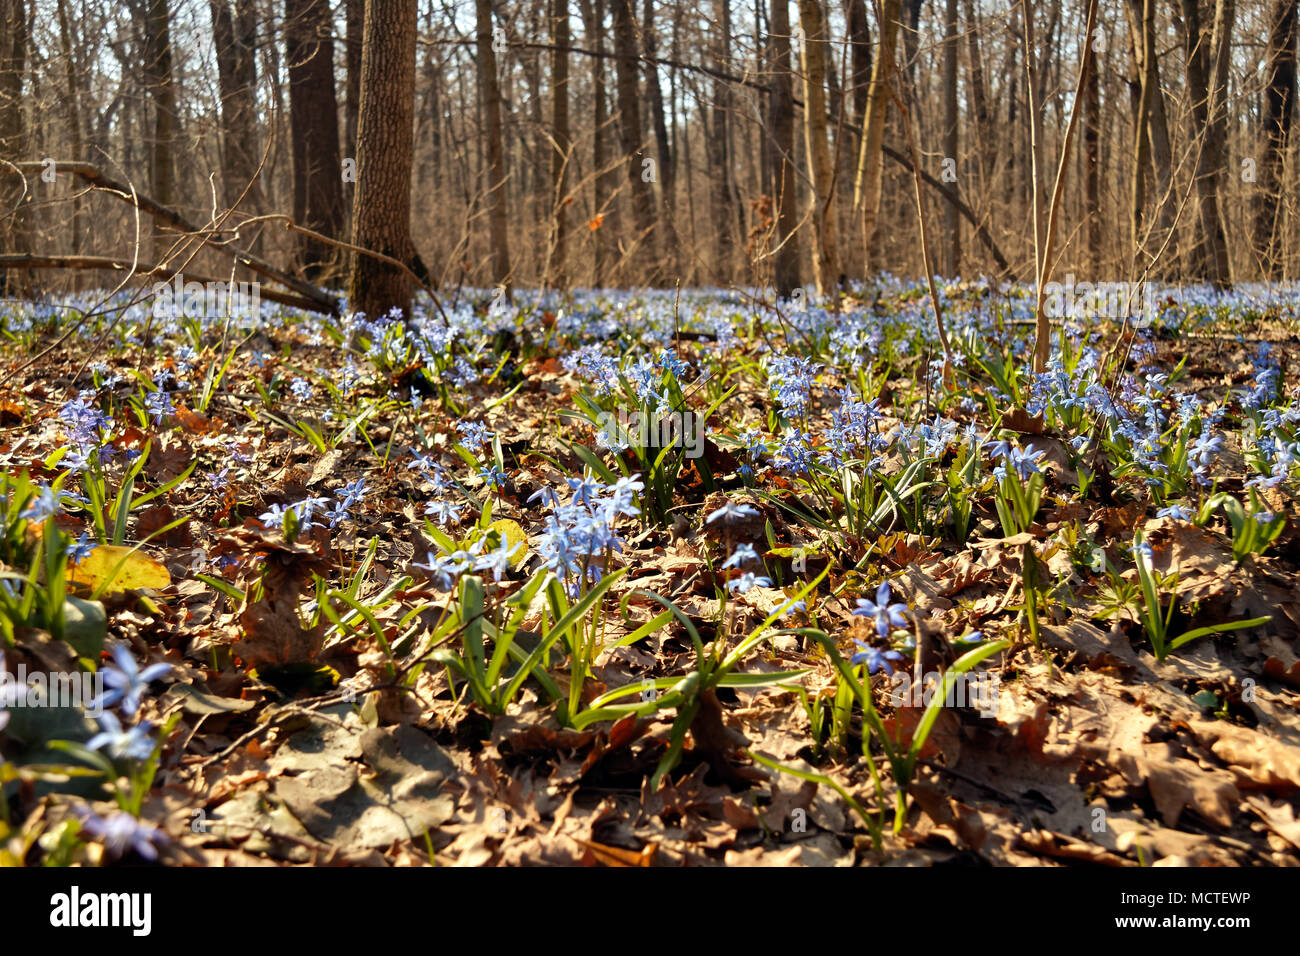 Flowering Of Small Blue Flowers Scilla In The Spring In A Forest